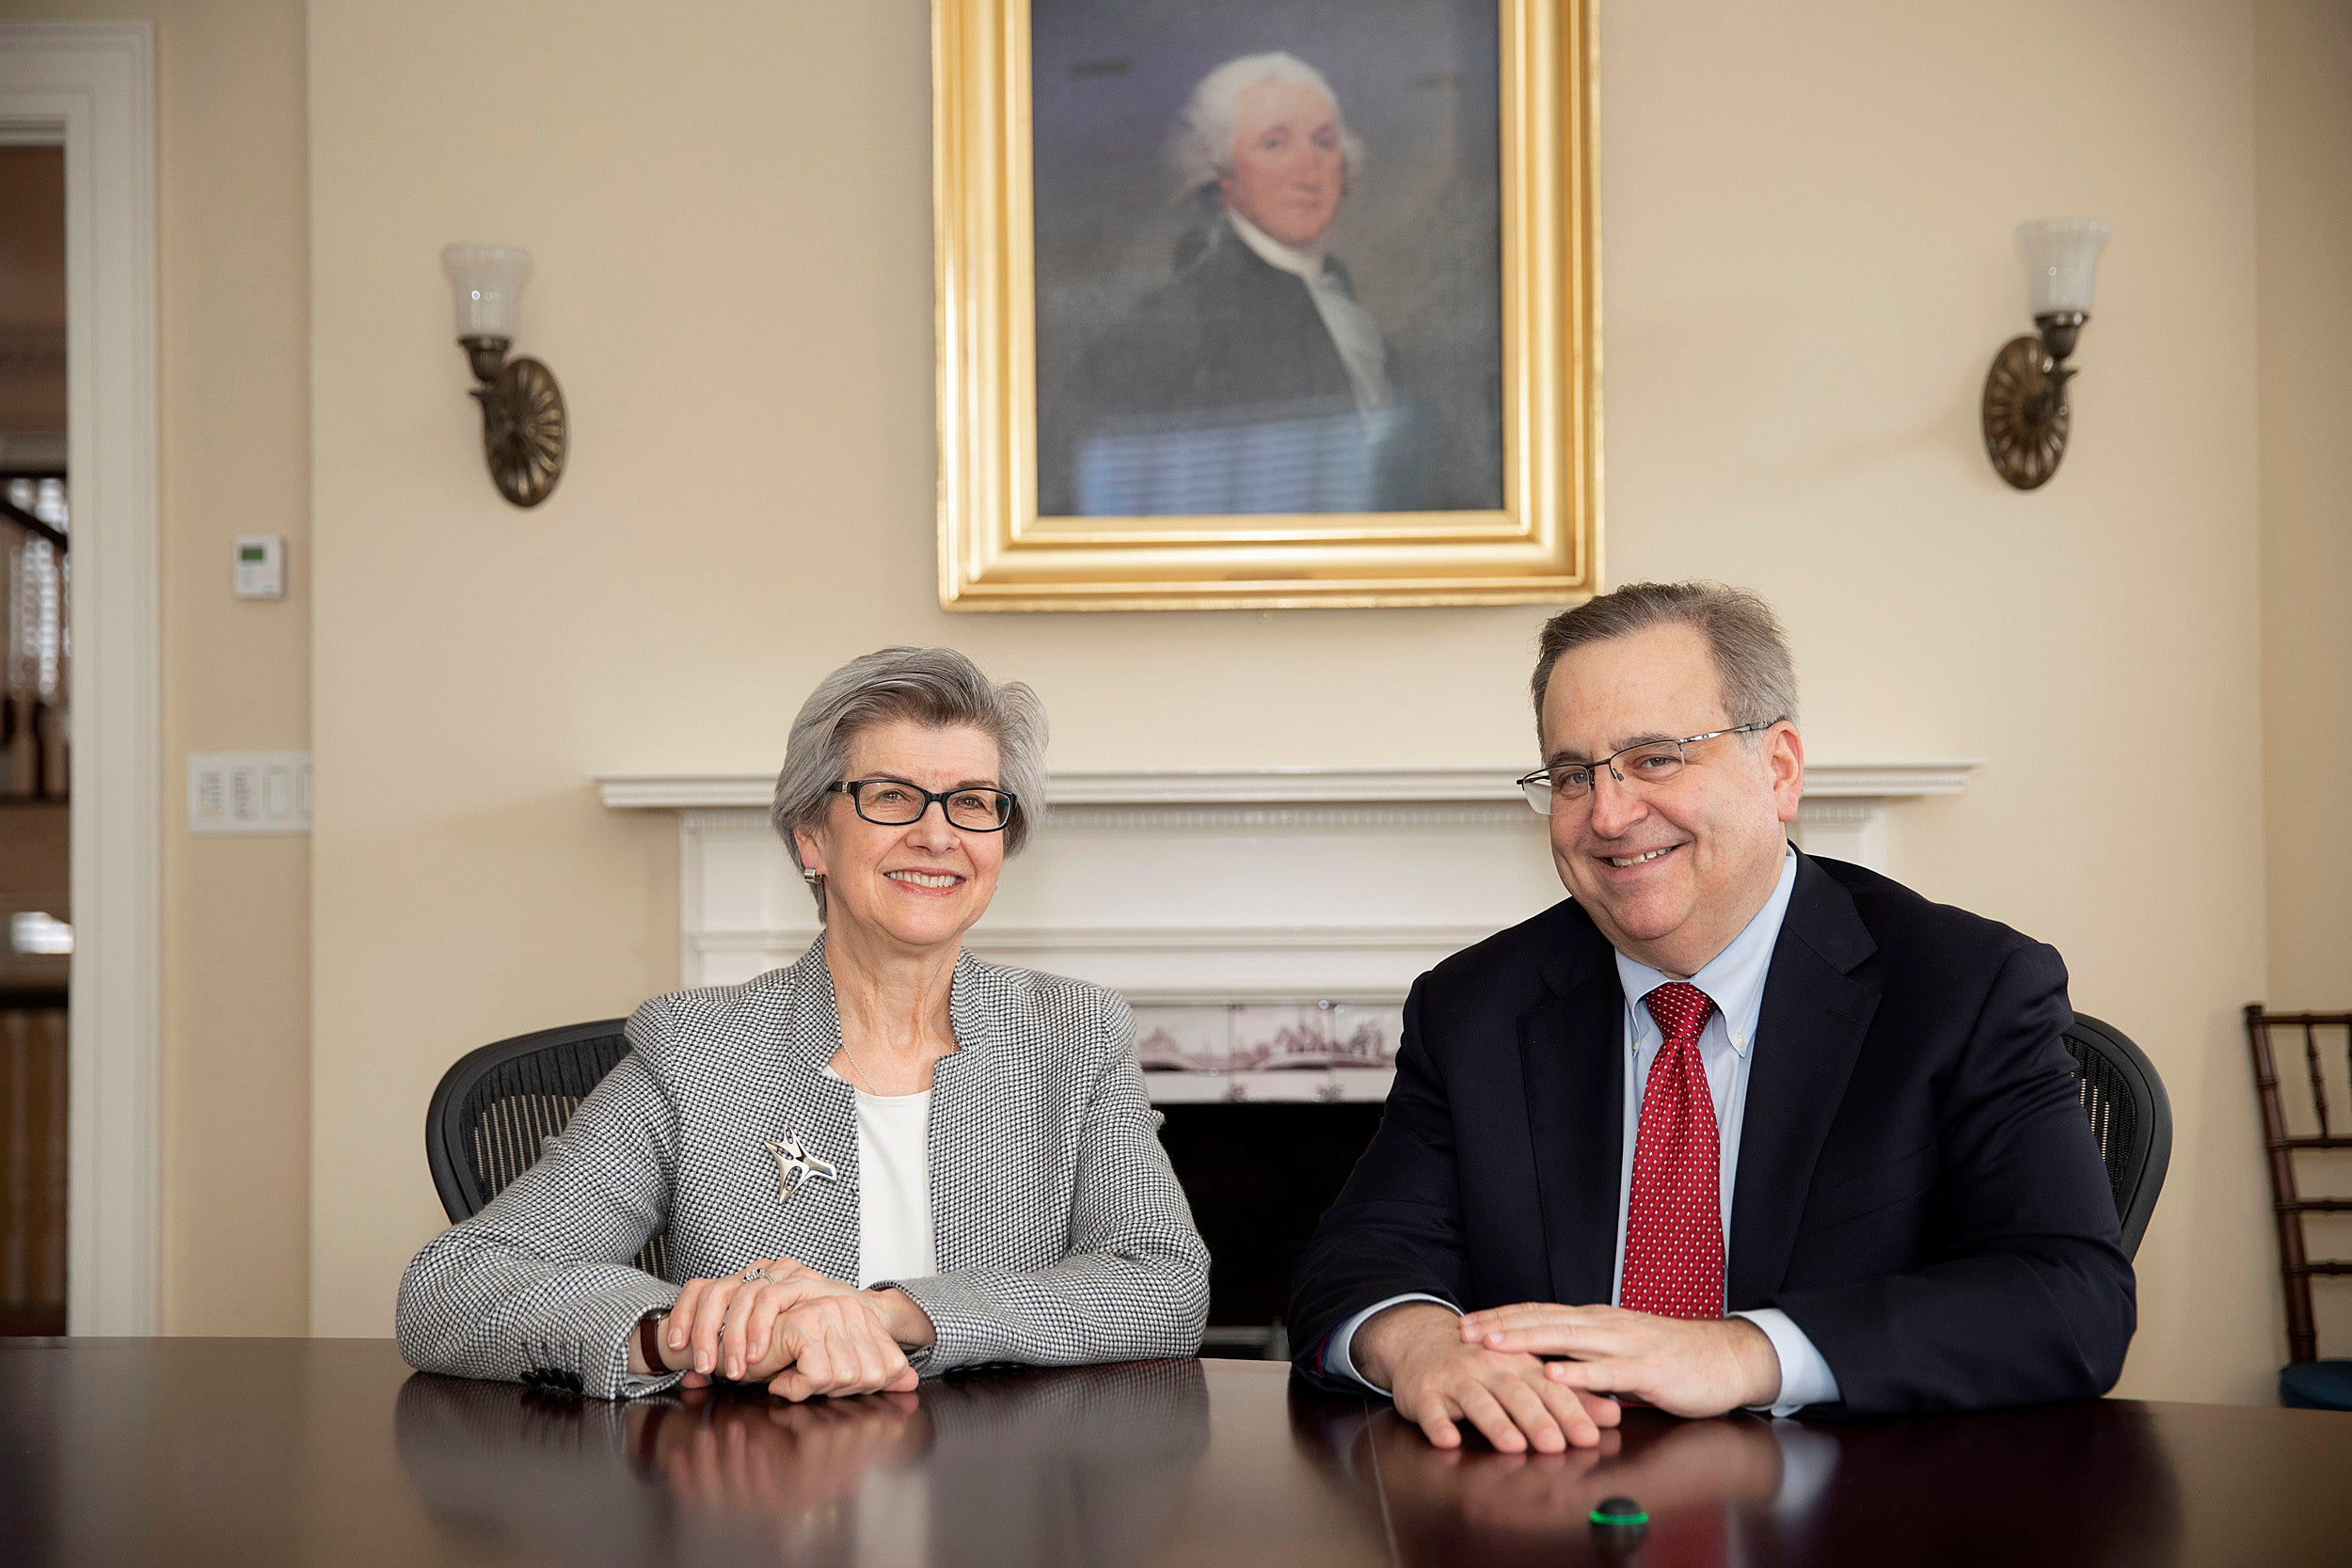 Overseers president Susan L. Carney '73, J.D. '77, and incoming Overseers president Michael Brown '83, J.D. '88